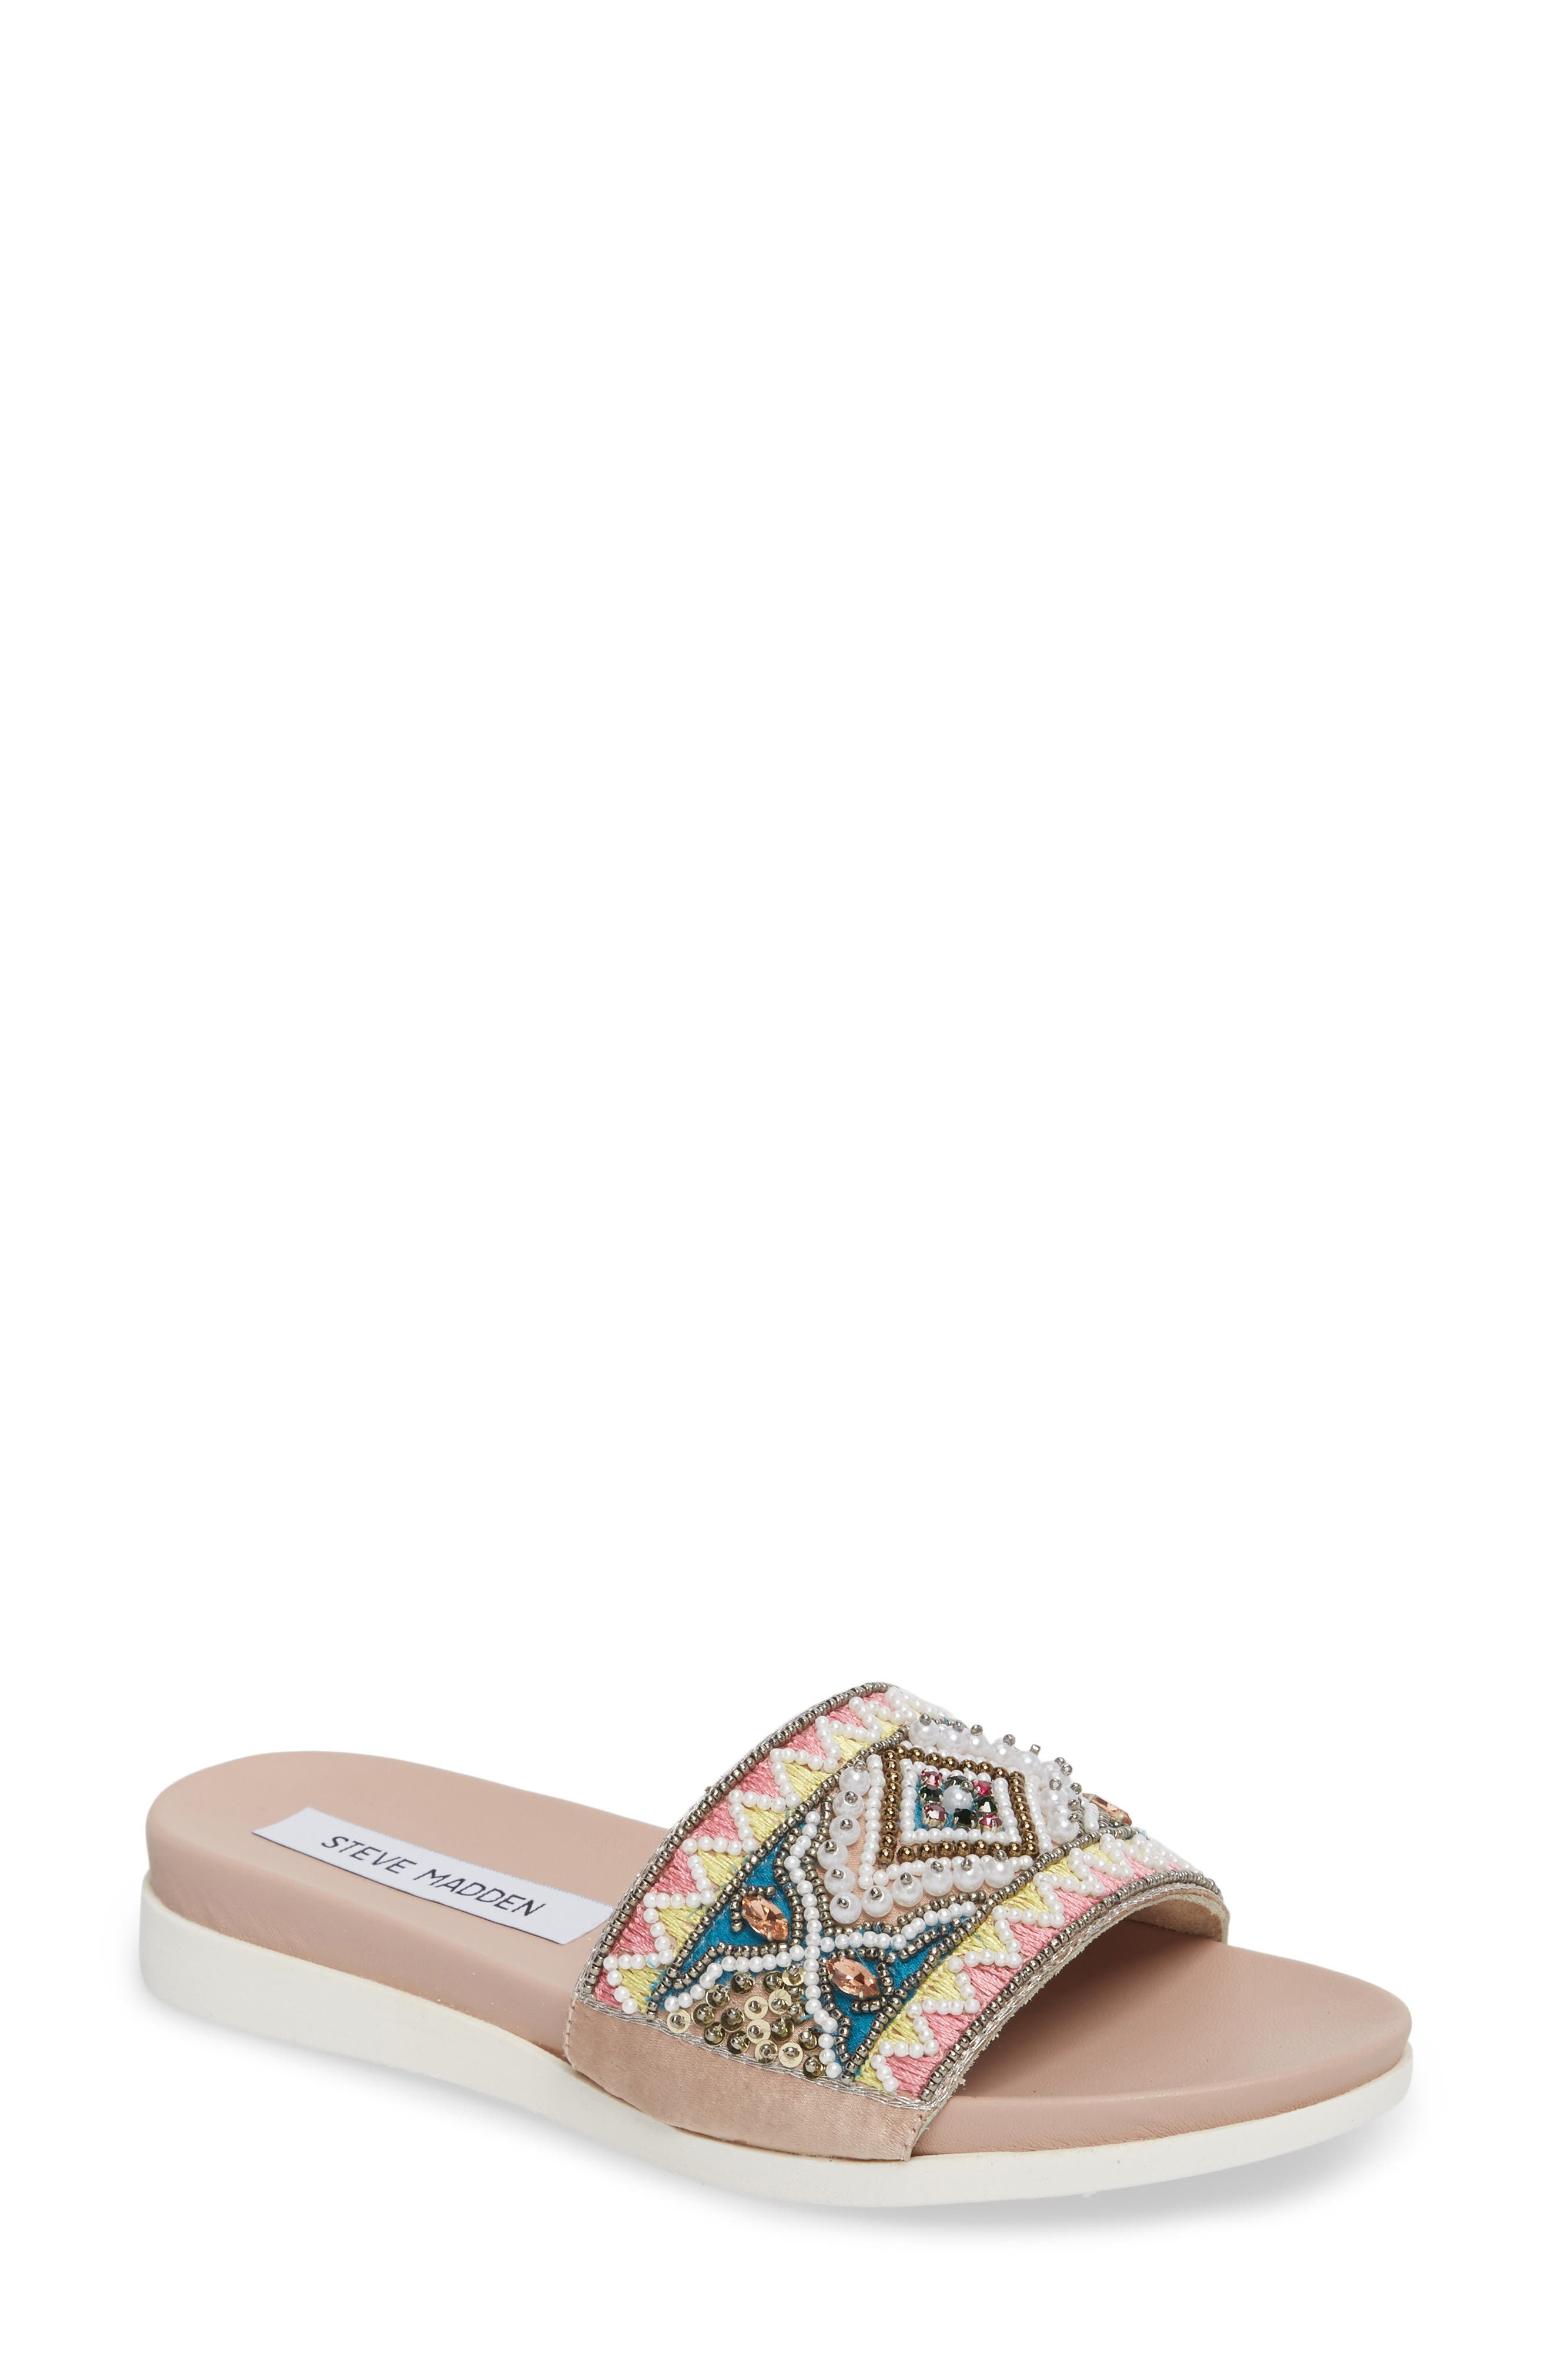 Thalia Beaded Slide Sandal,                             Main thumbnail 1, color,                             400